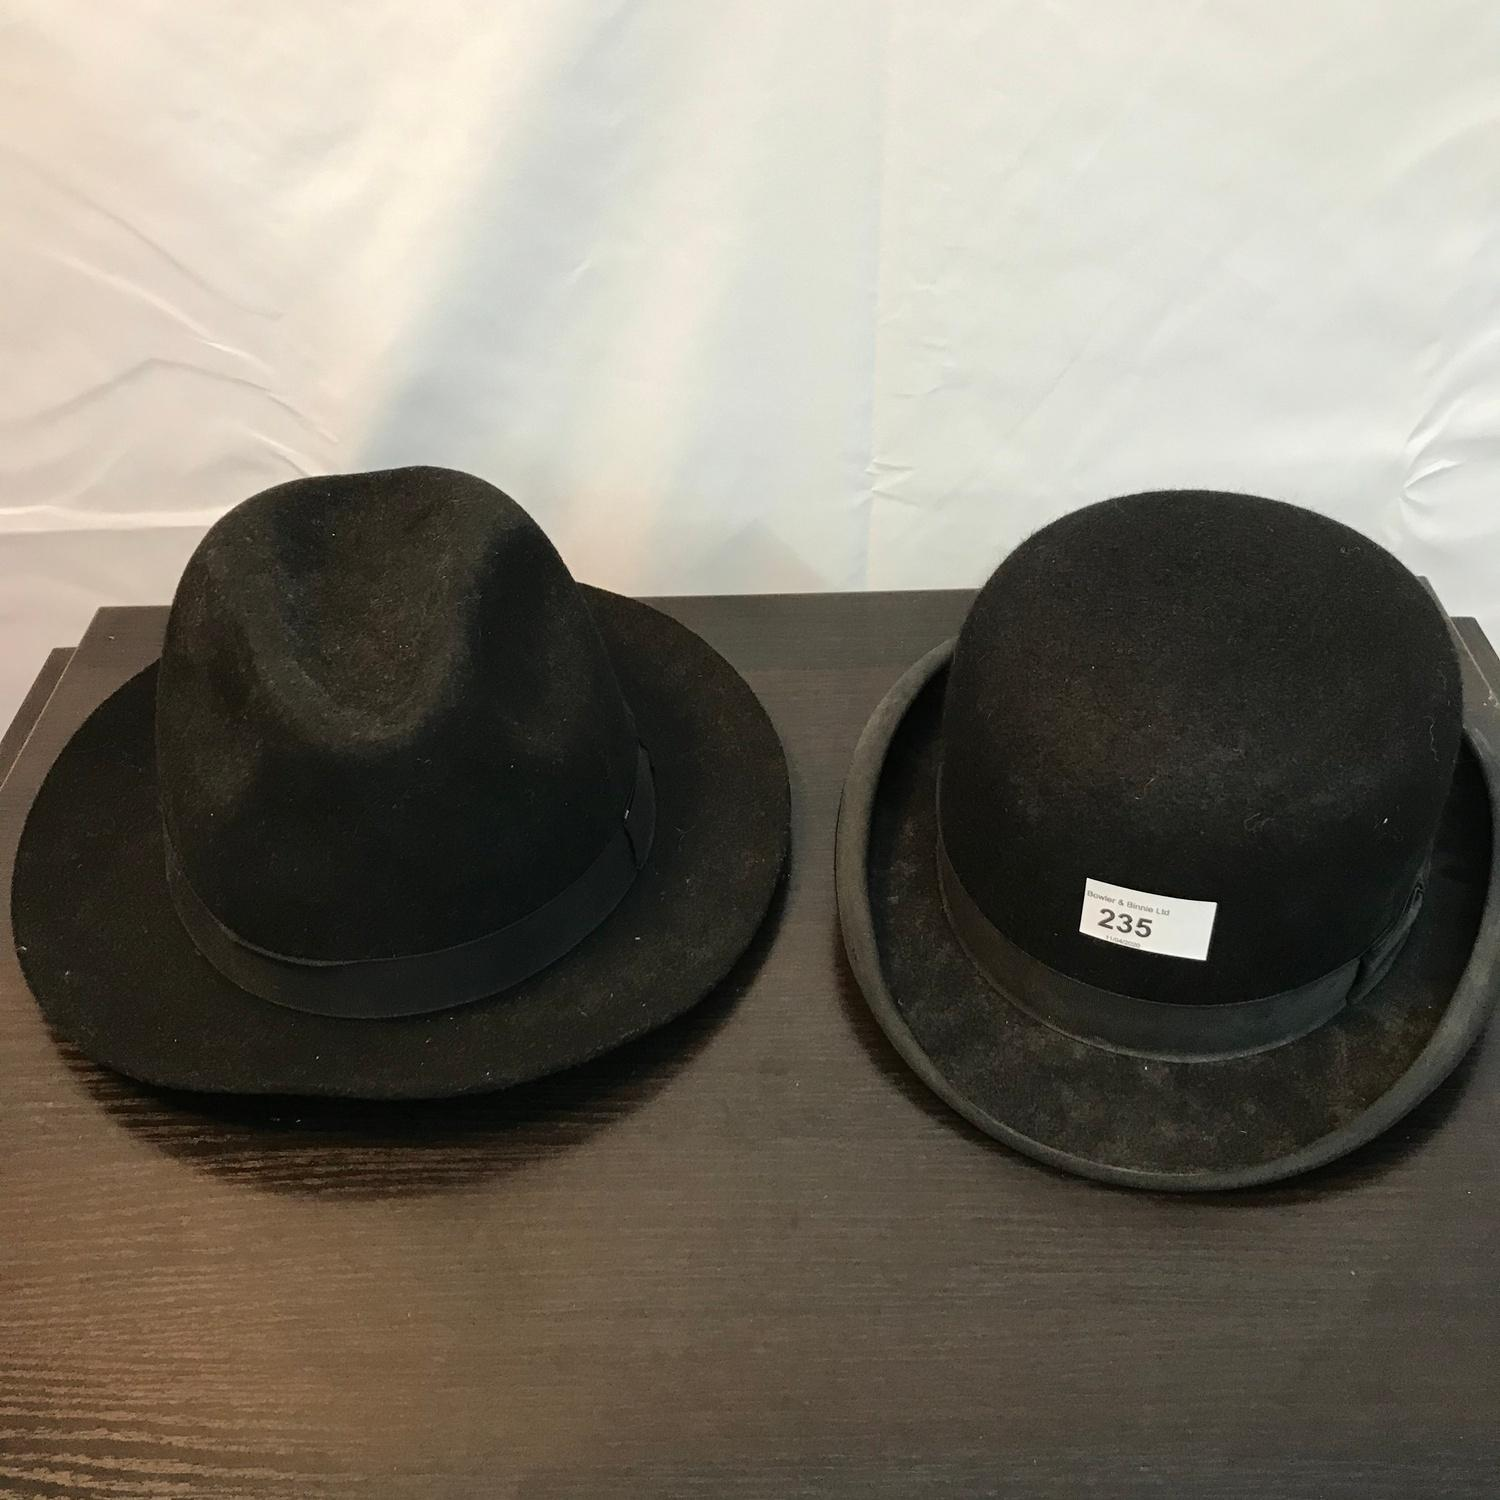 Antique Dunn & Co Piccadilly Circus London Bowler hat and Failsworth soft wool hat.